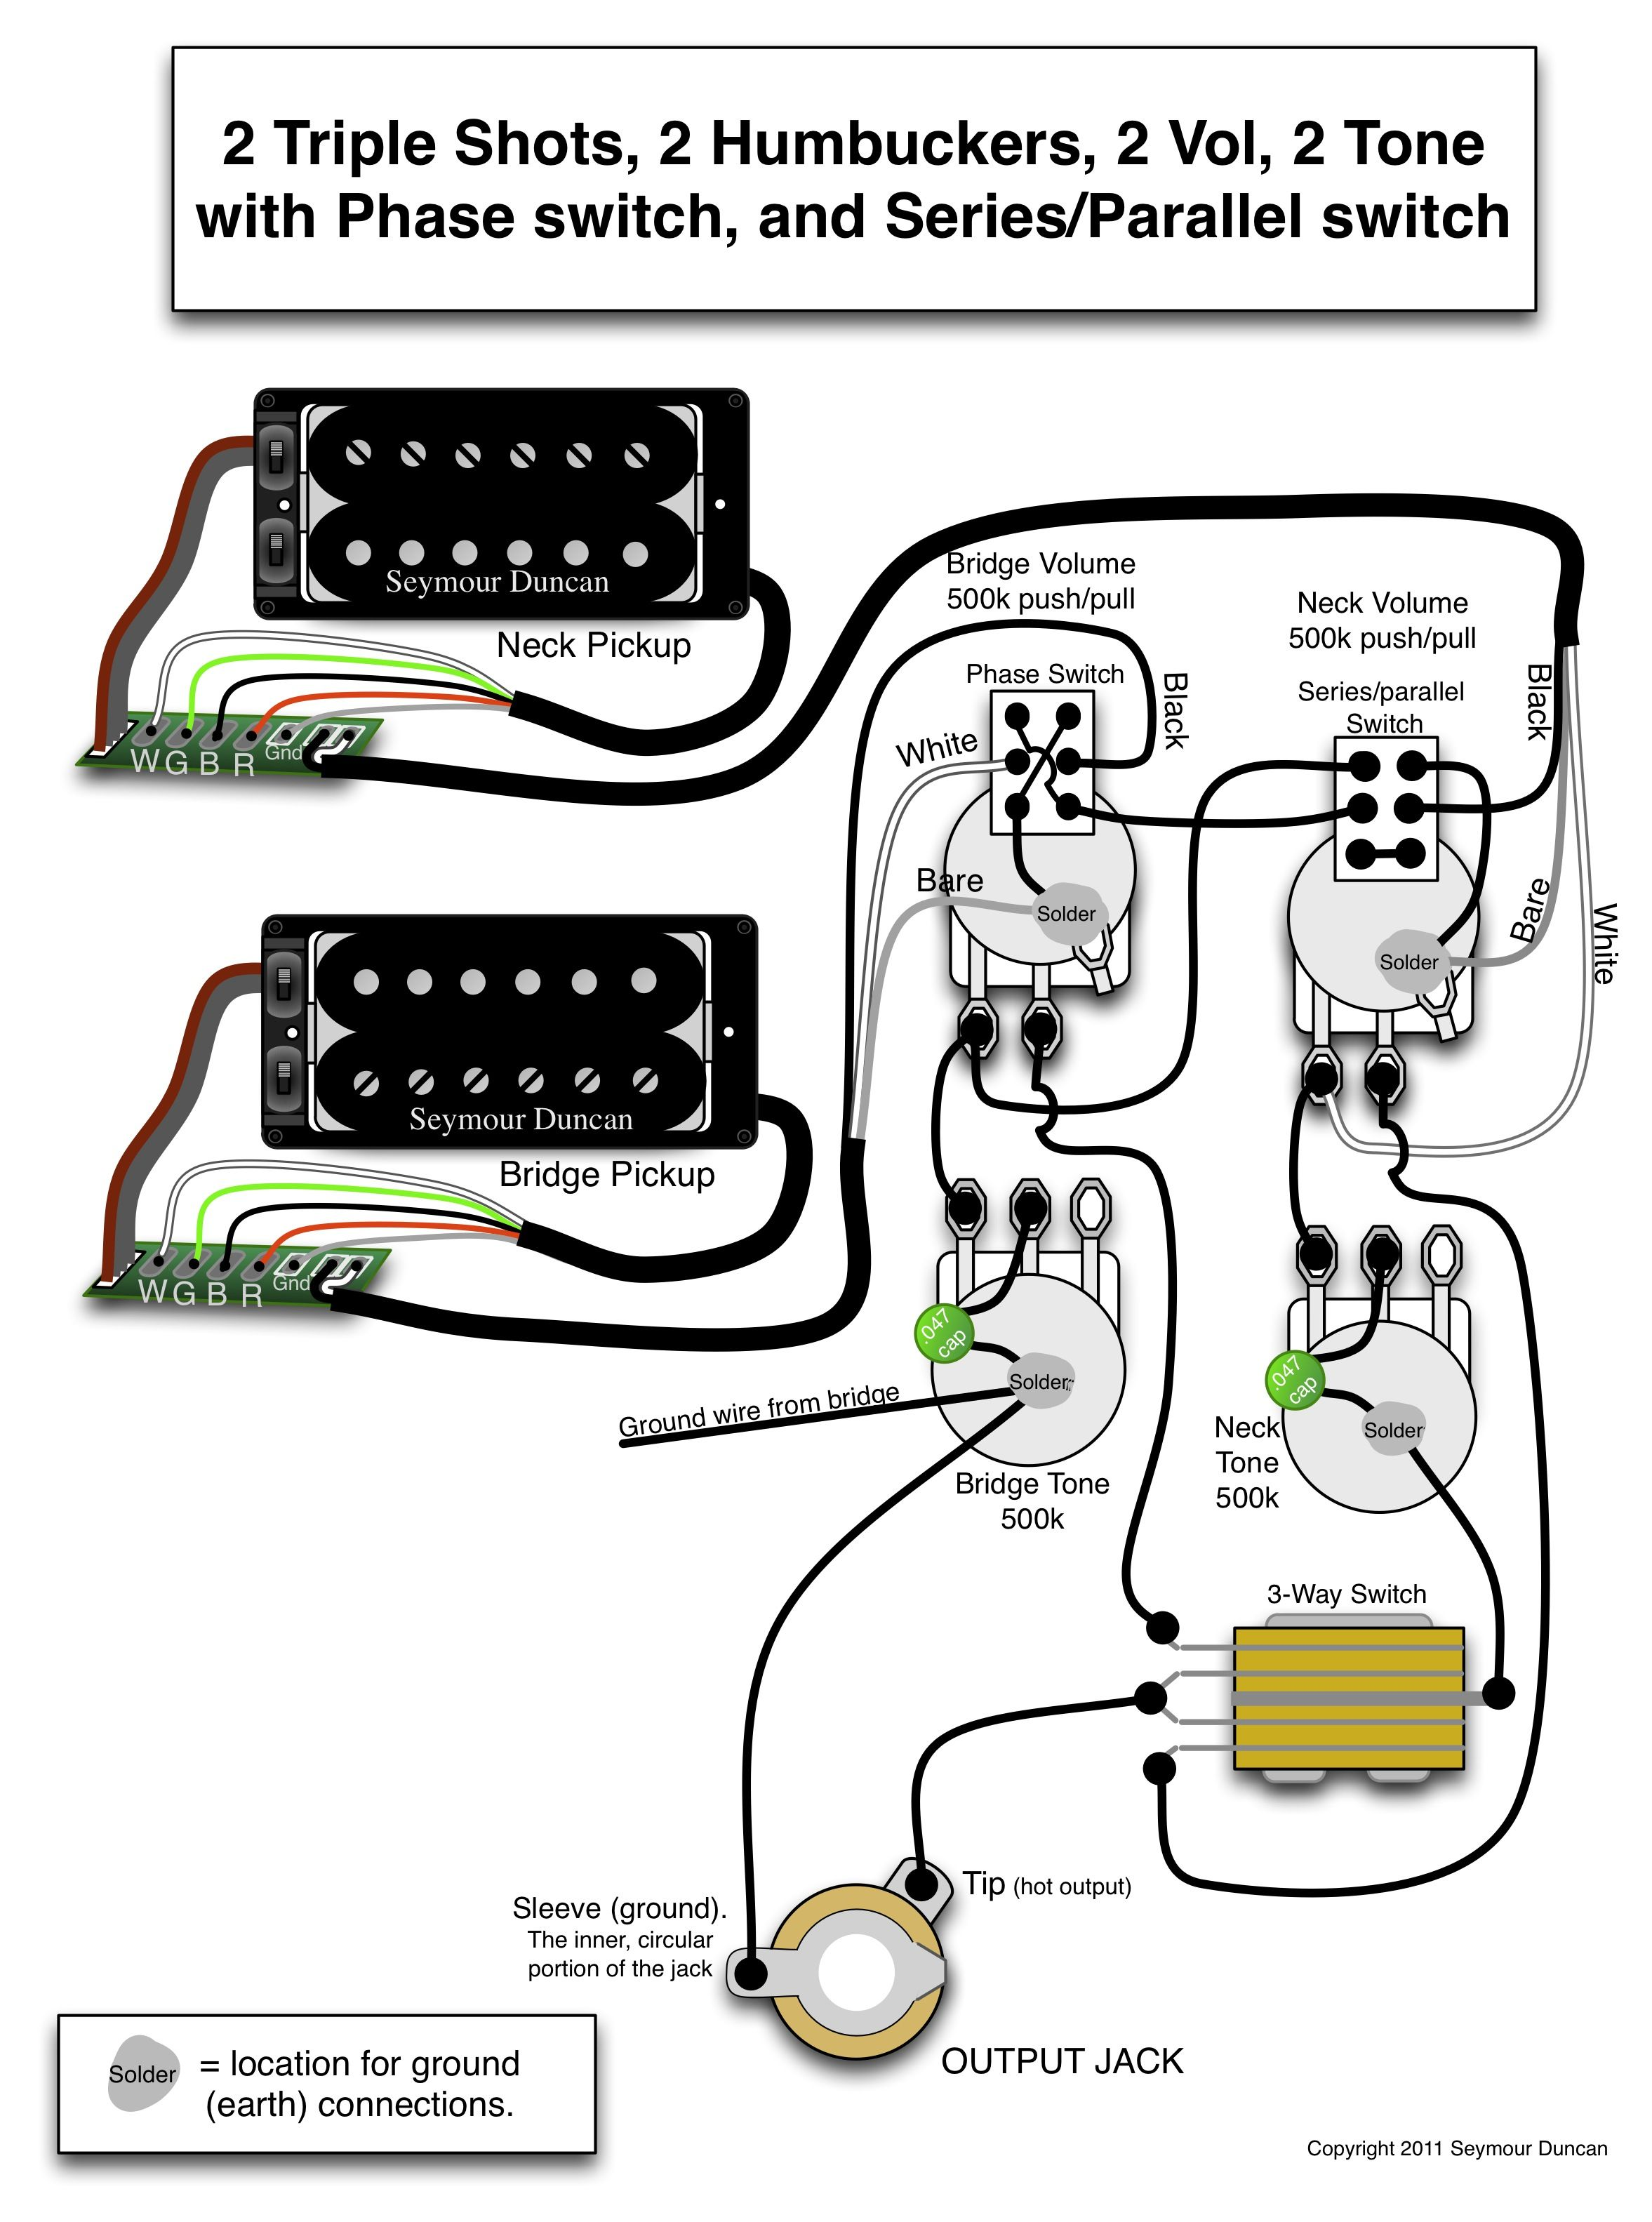 Seymour duncan wiring diagram triple shots